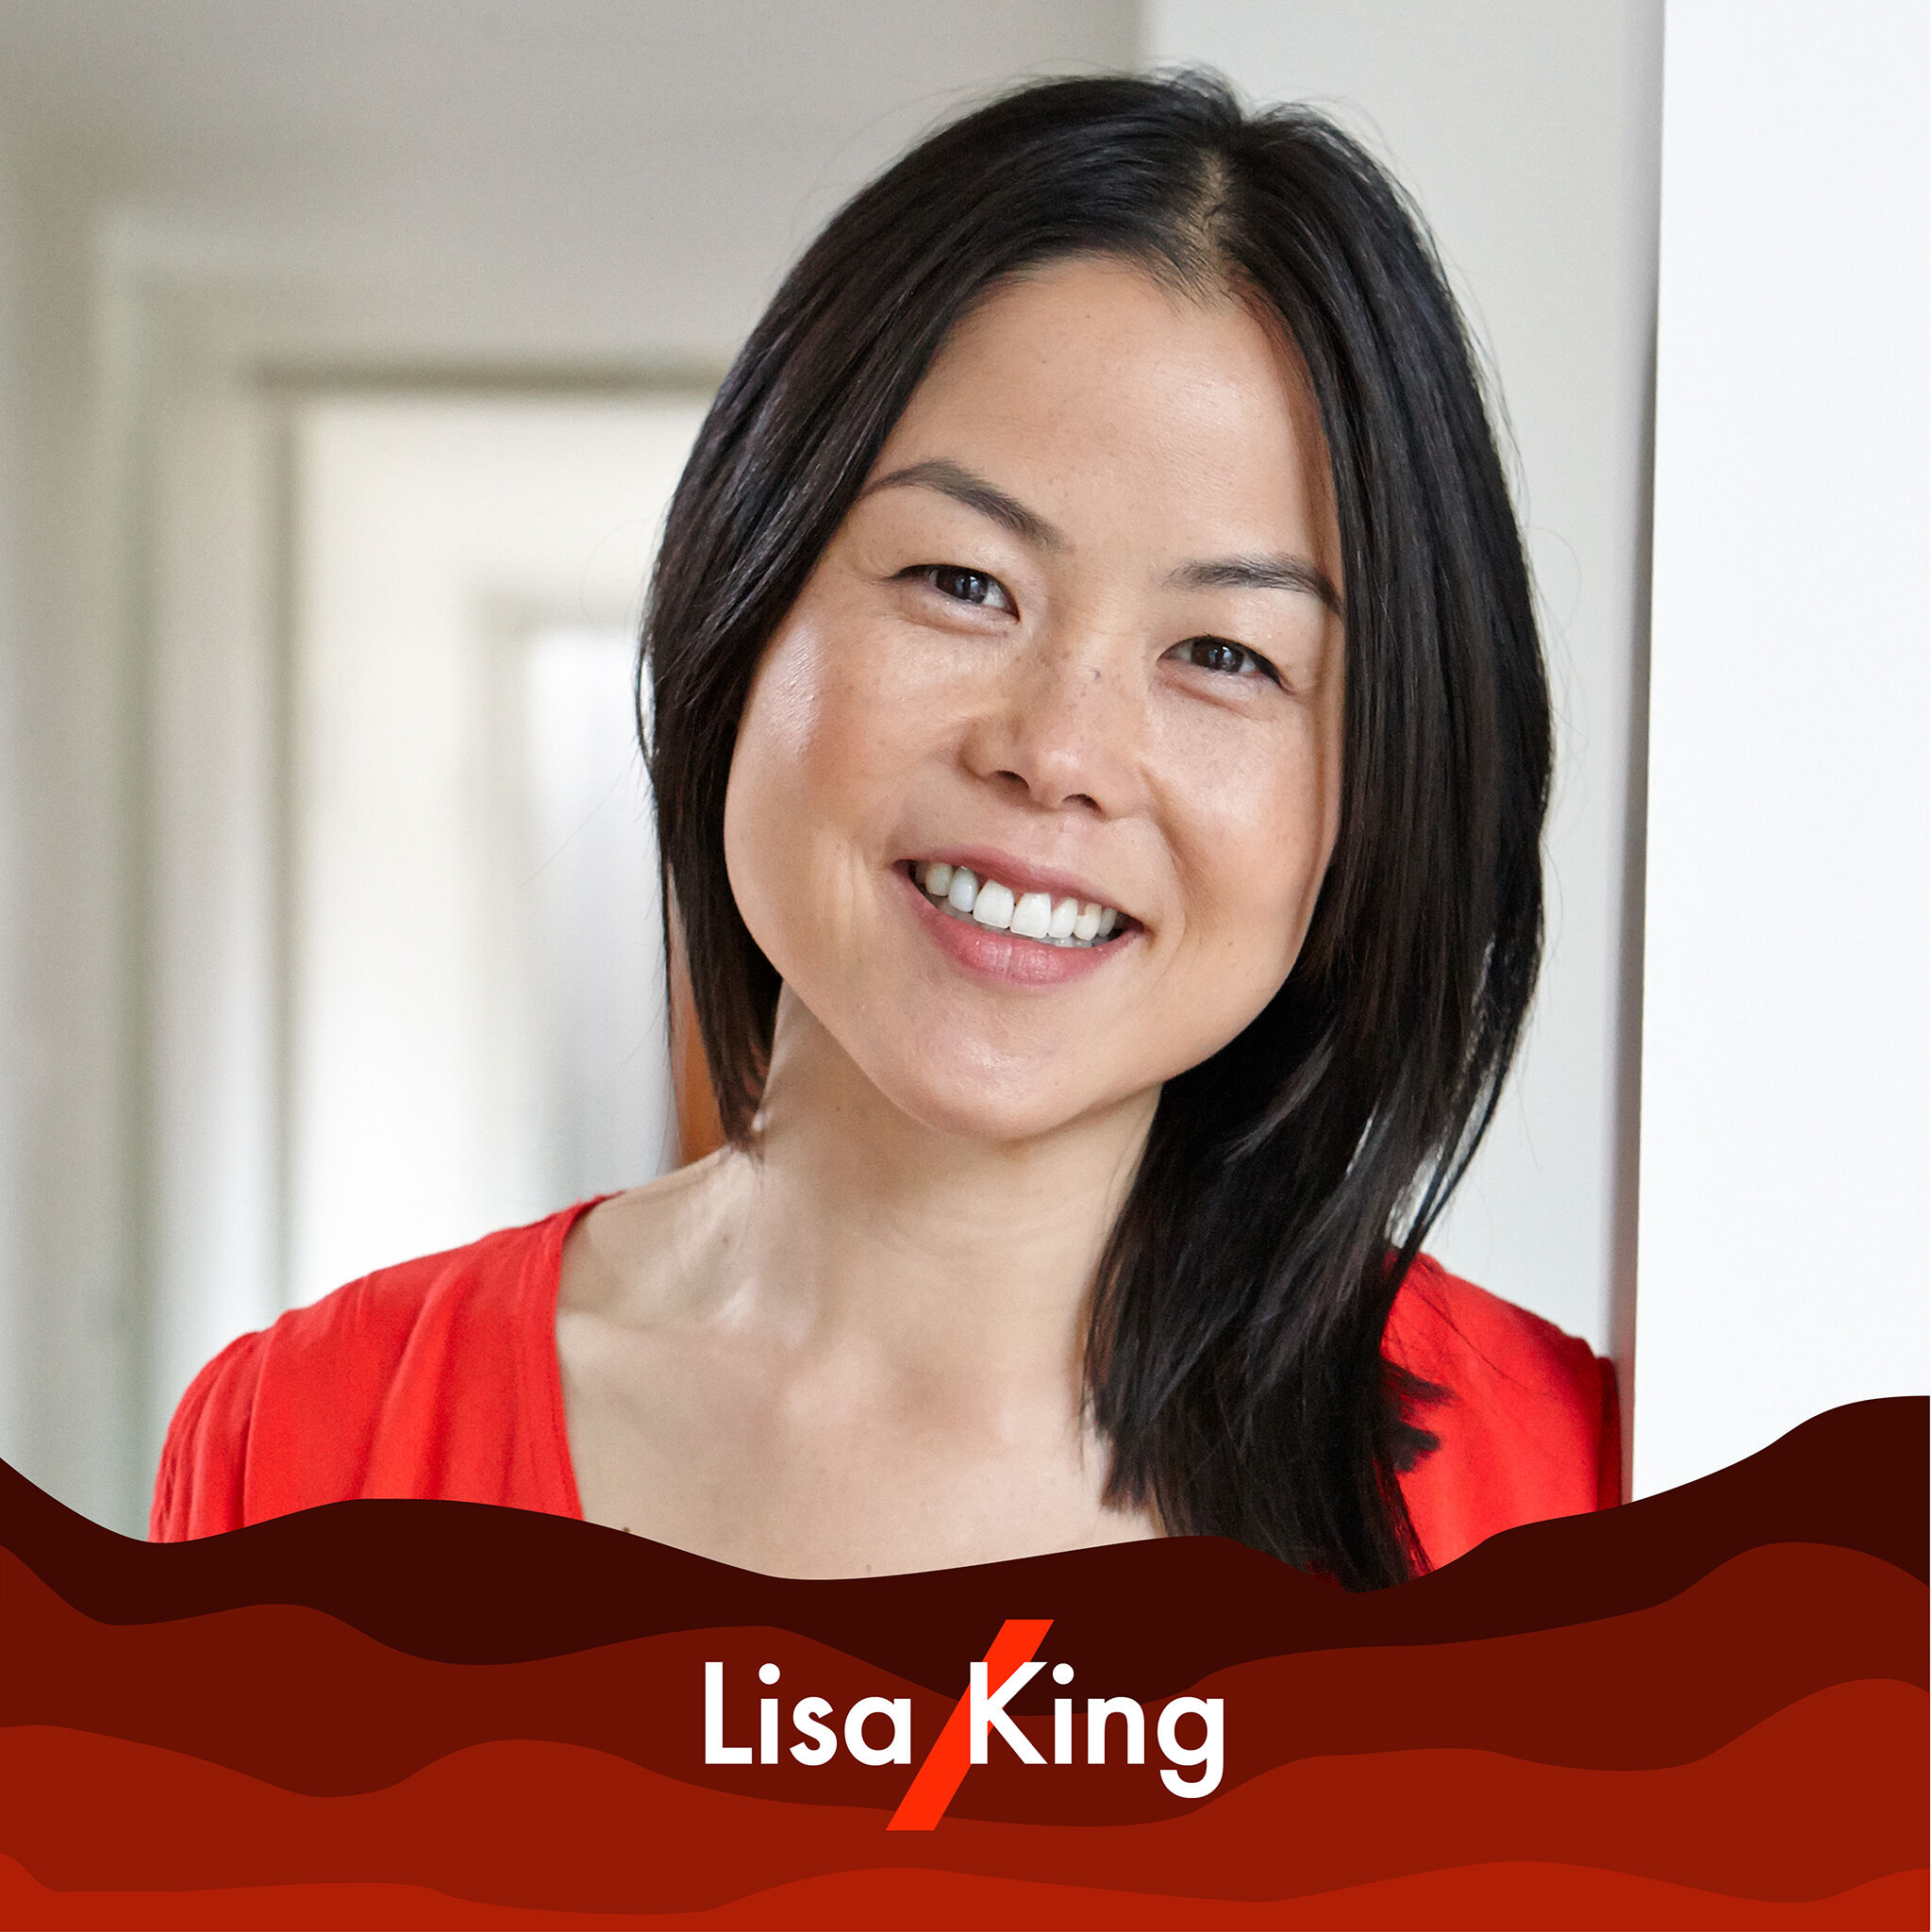 A picture of Lisa King